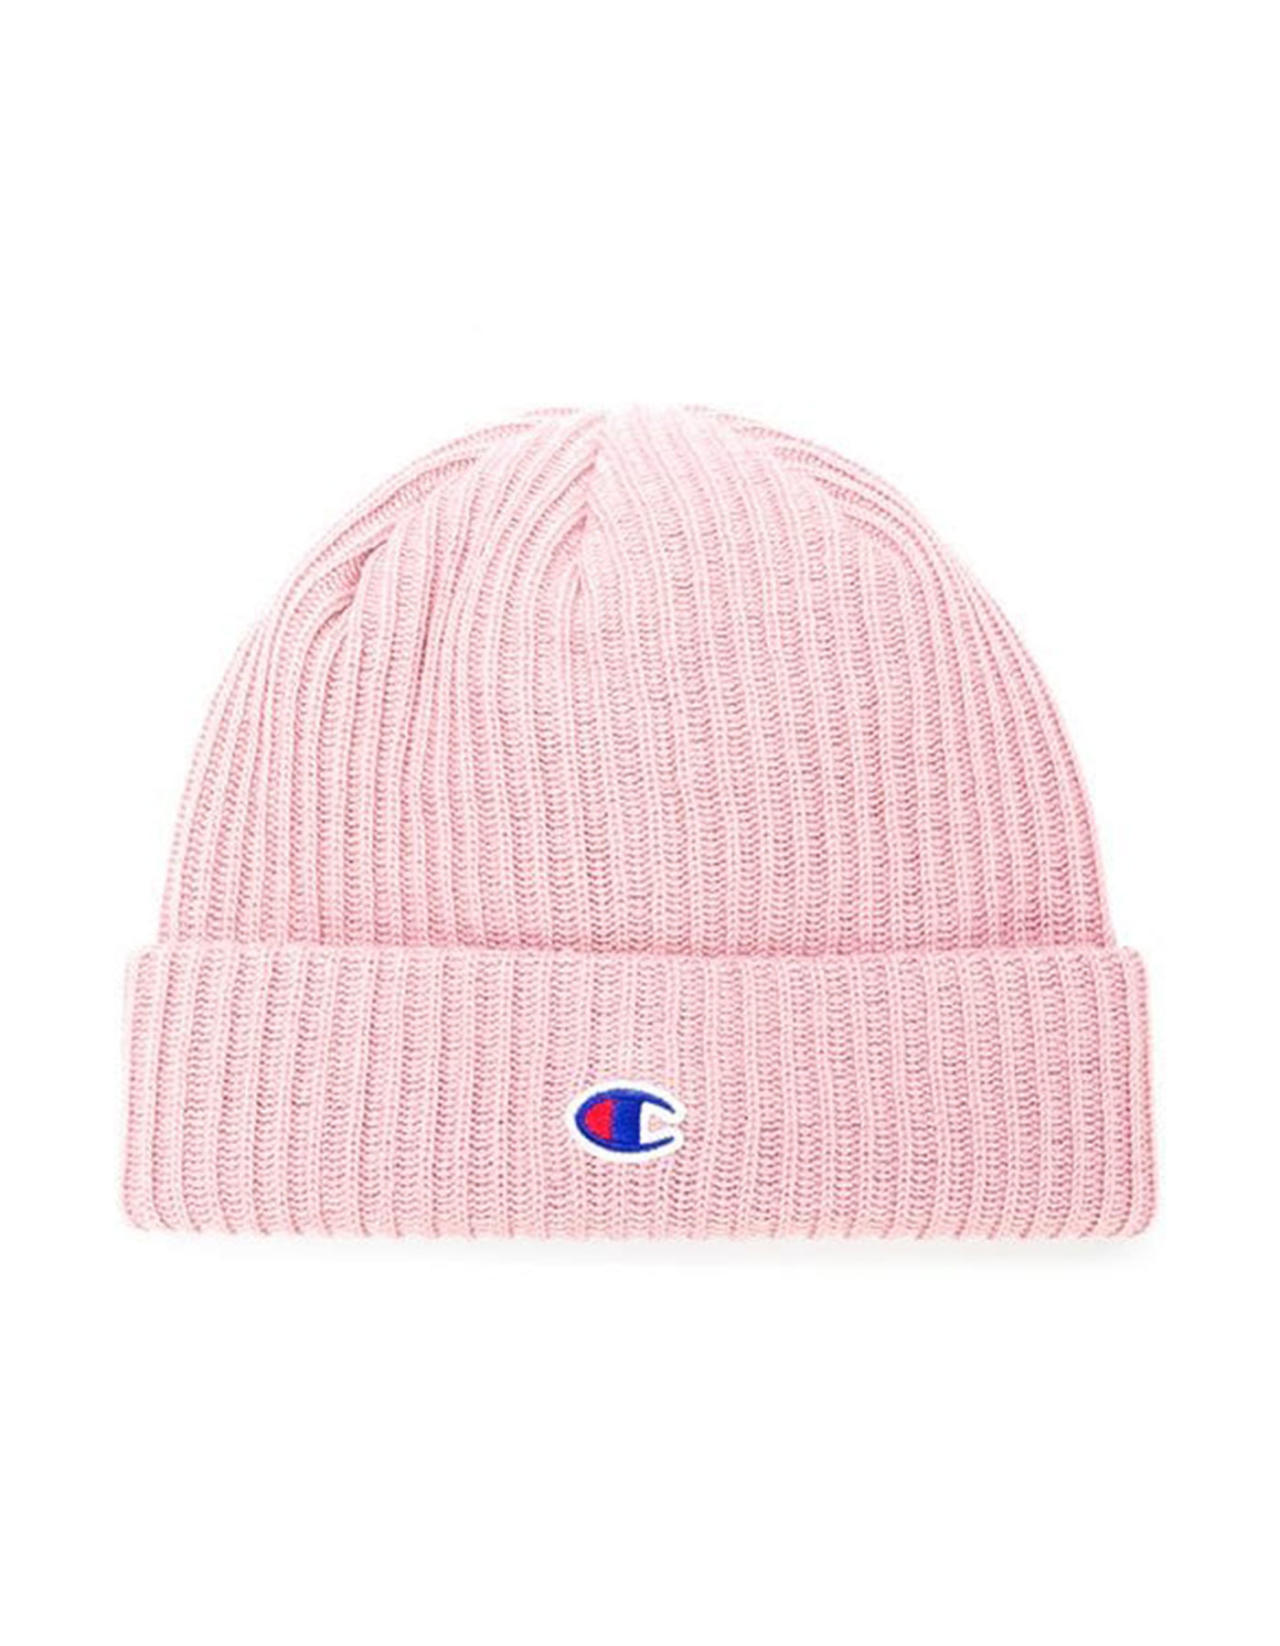 ec180124797 ... Gucci s wool New York Yankees-inspired hat.  justbobbi Diary Beanies Champion